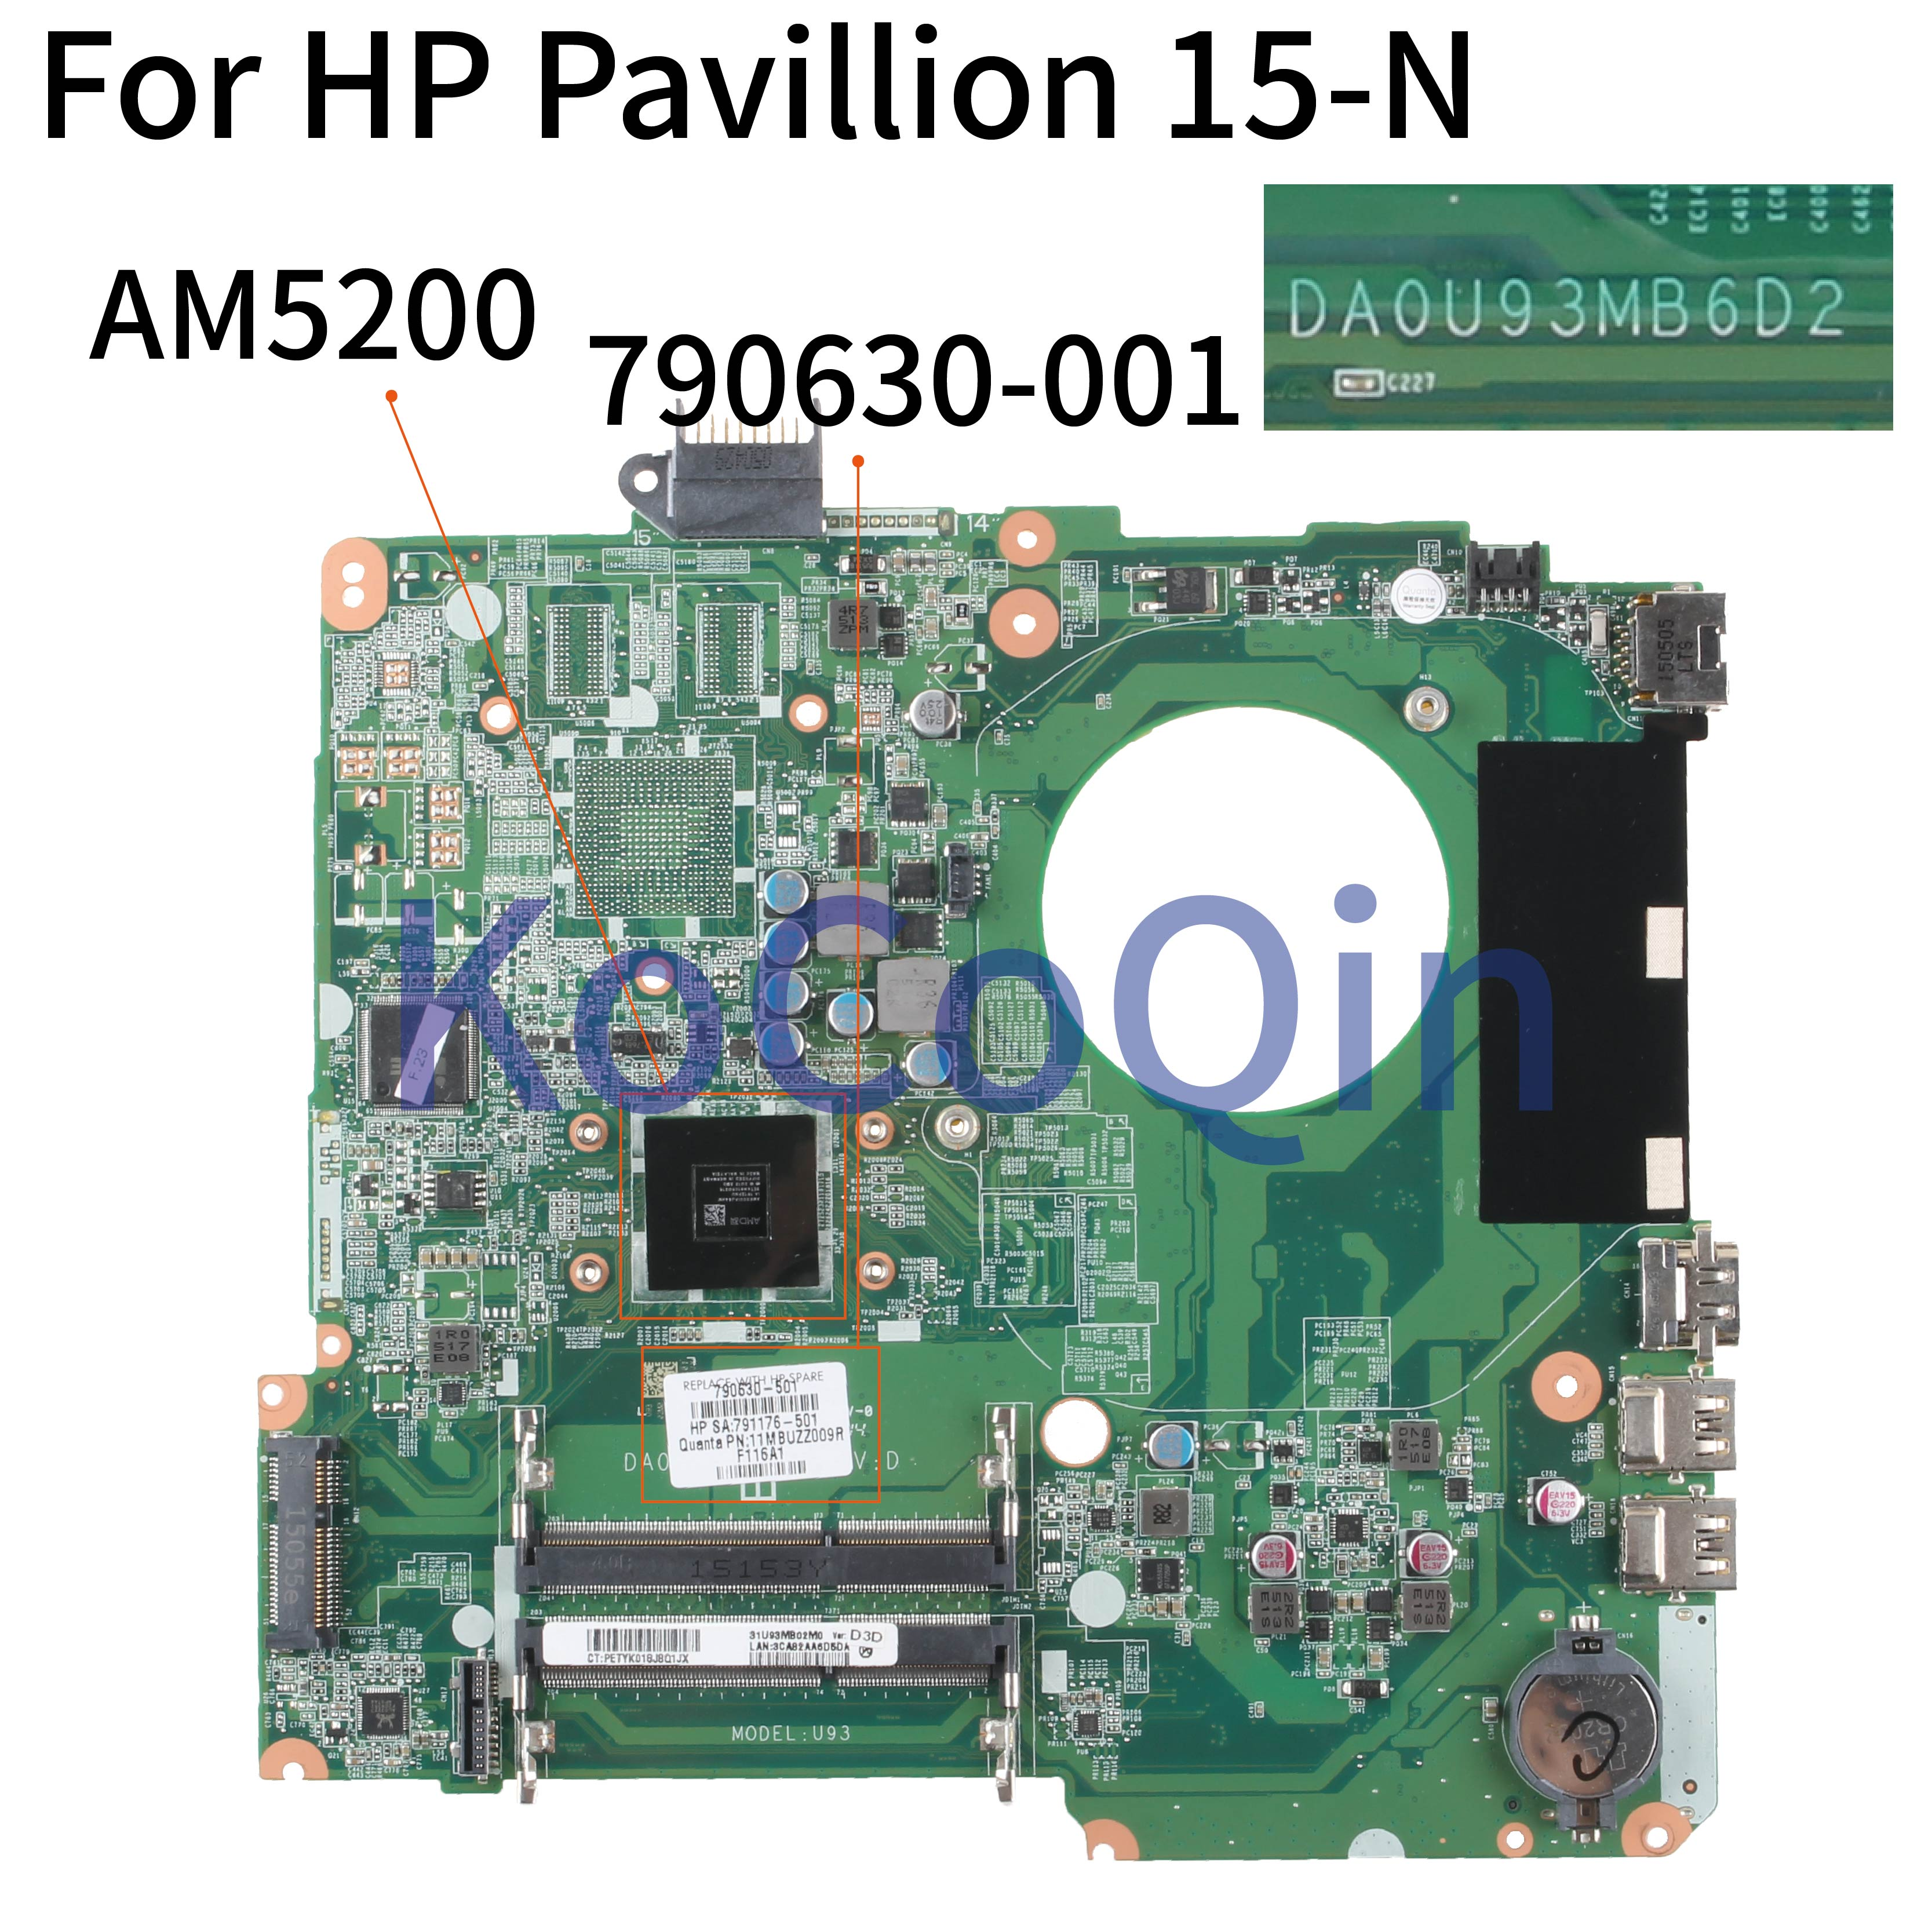 KoCoQin Laptop Motherboard For HP Pavillion 15-N 15-F A6- AM5200 Mainboard DA0U93MB6D2 790630-001 790630-501 791176-501